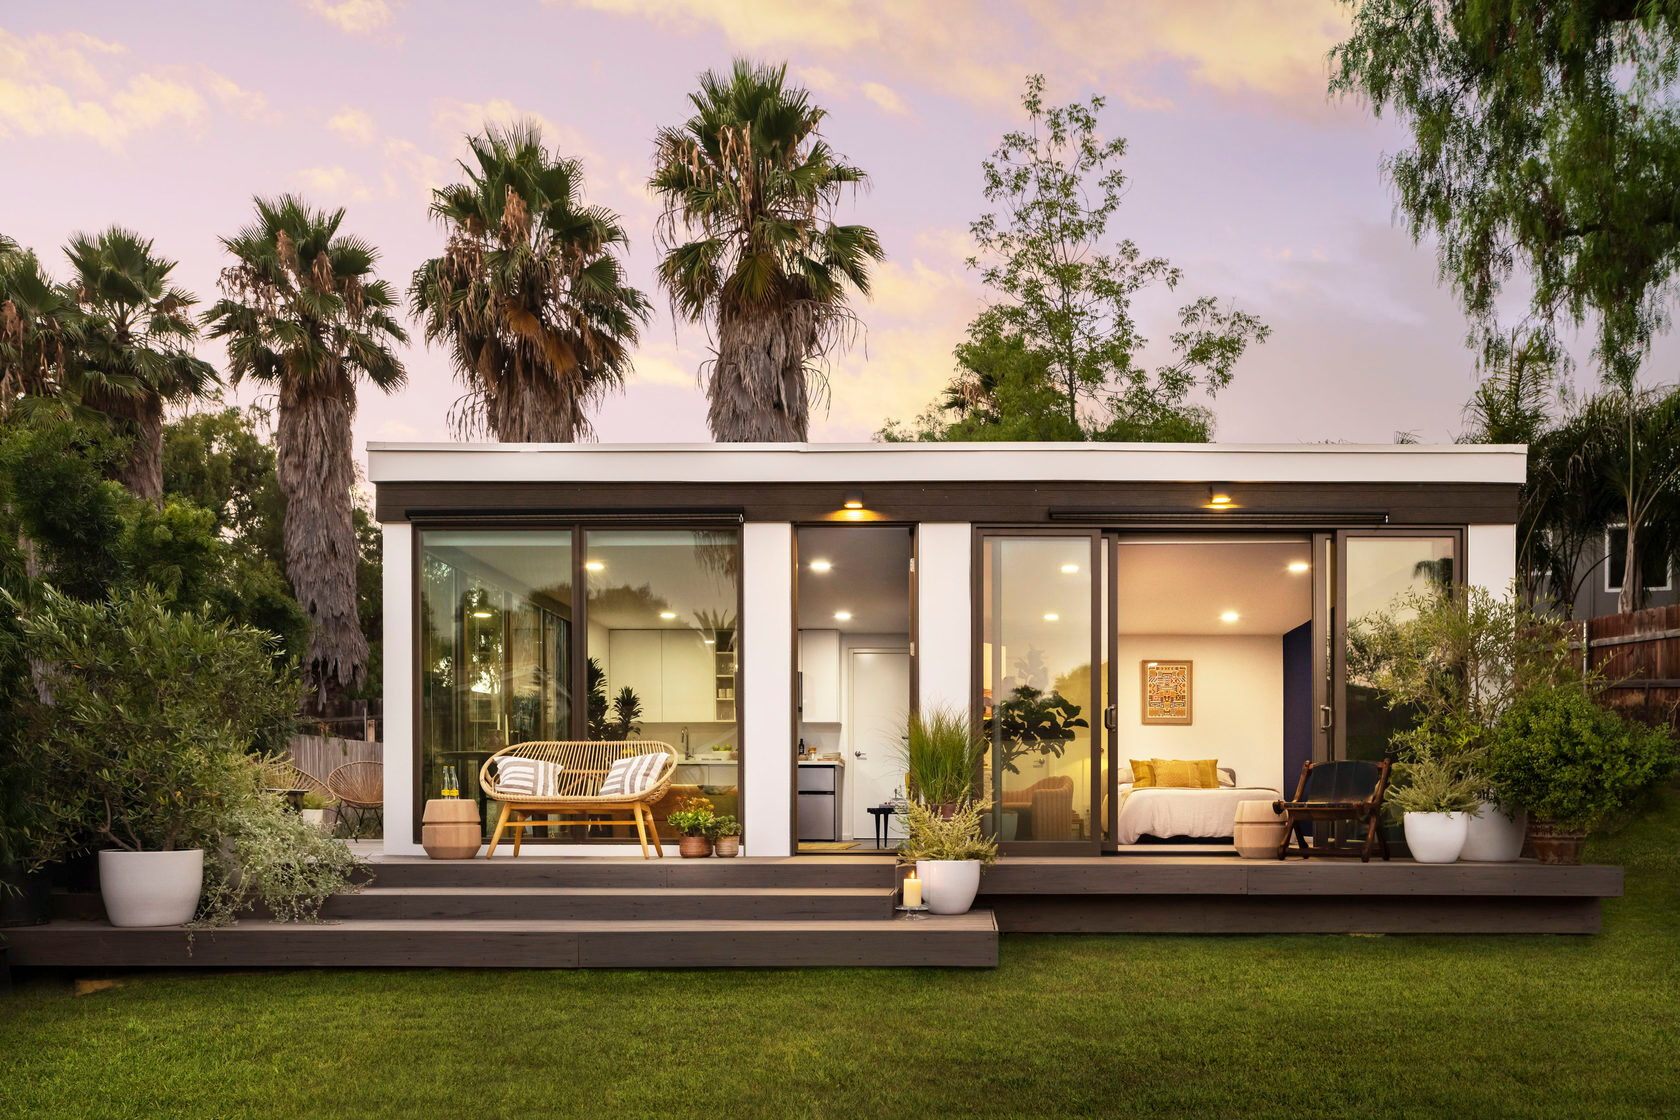 California Startup 3D Prints Homes in Just 24 Hours